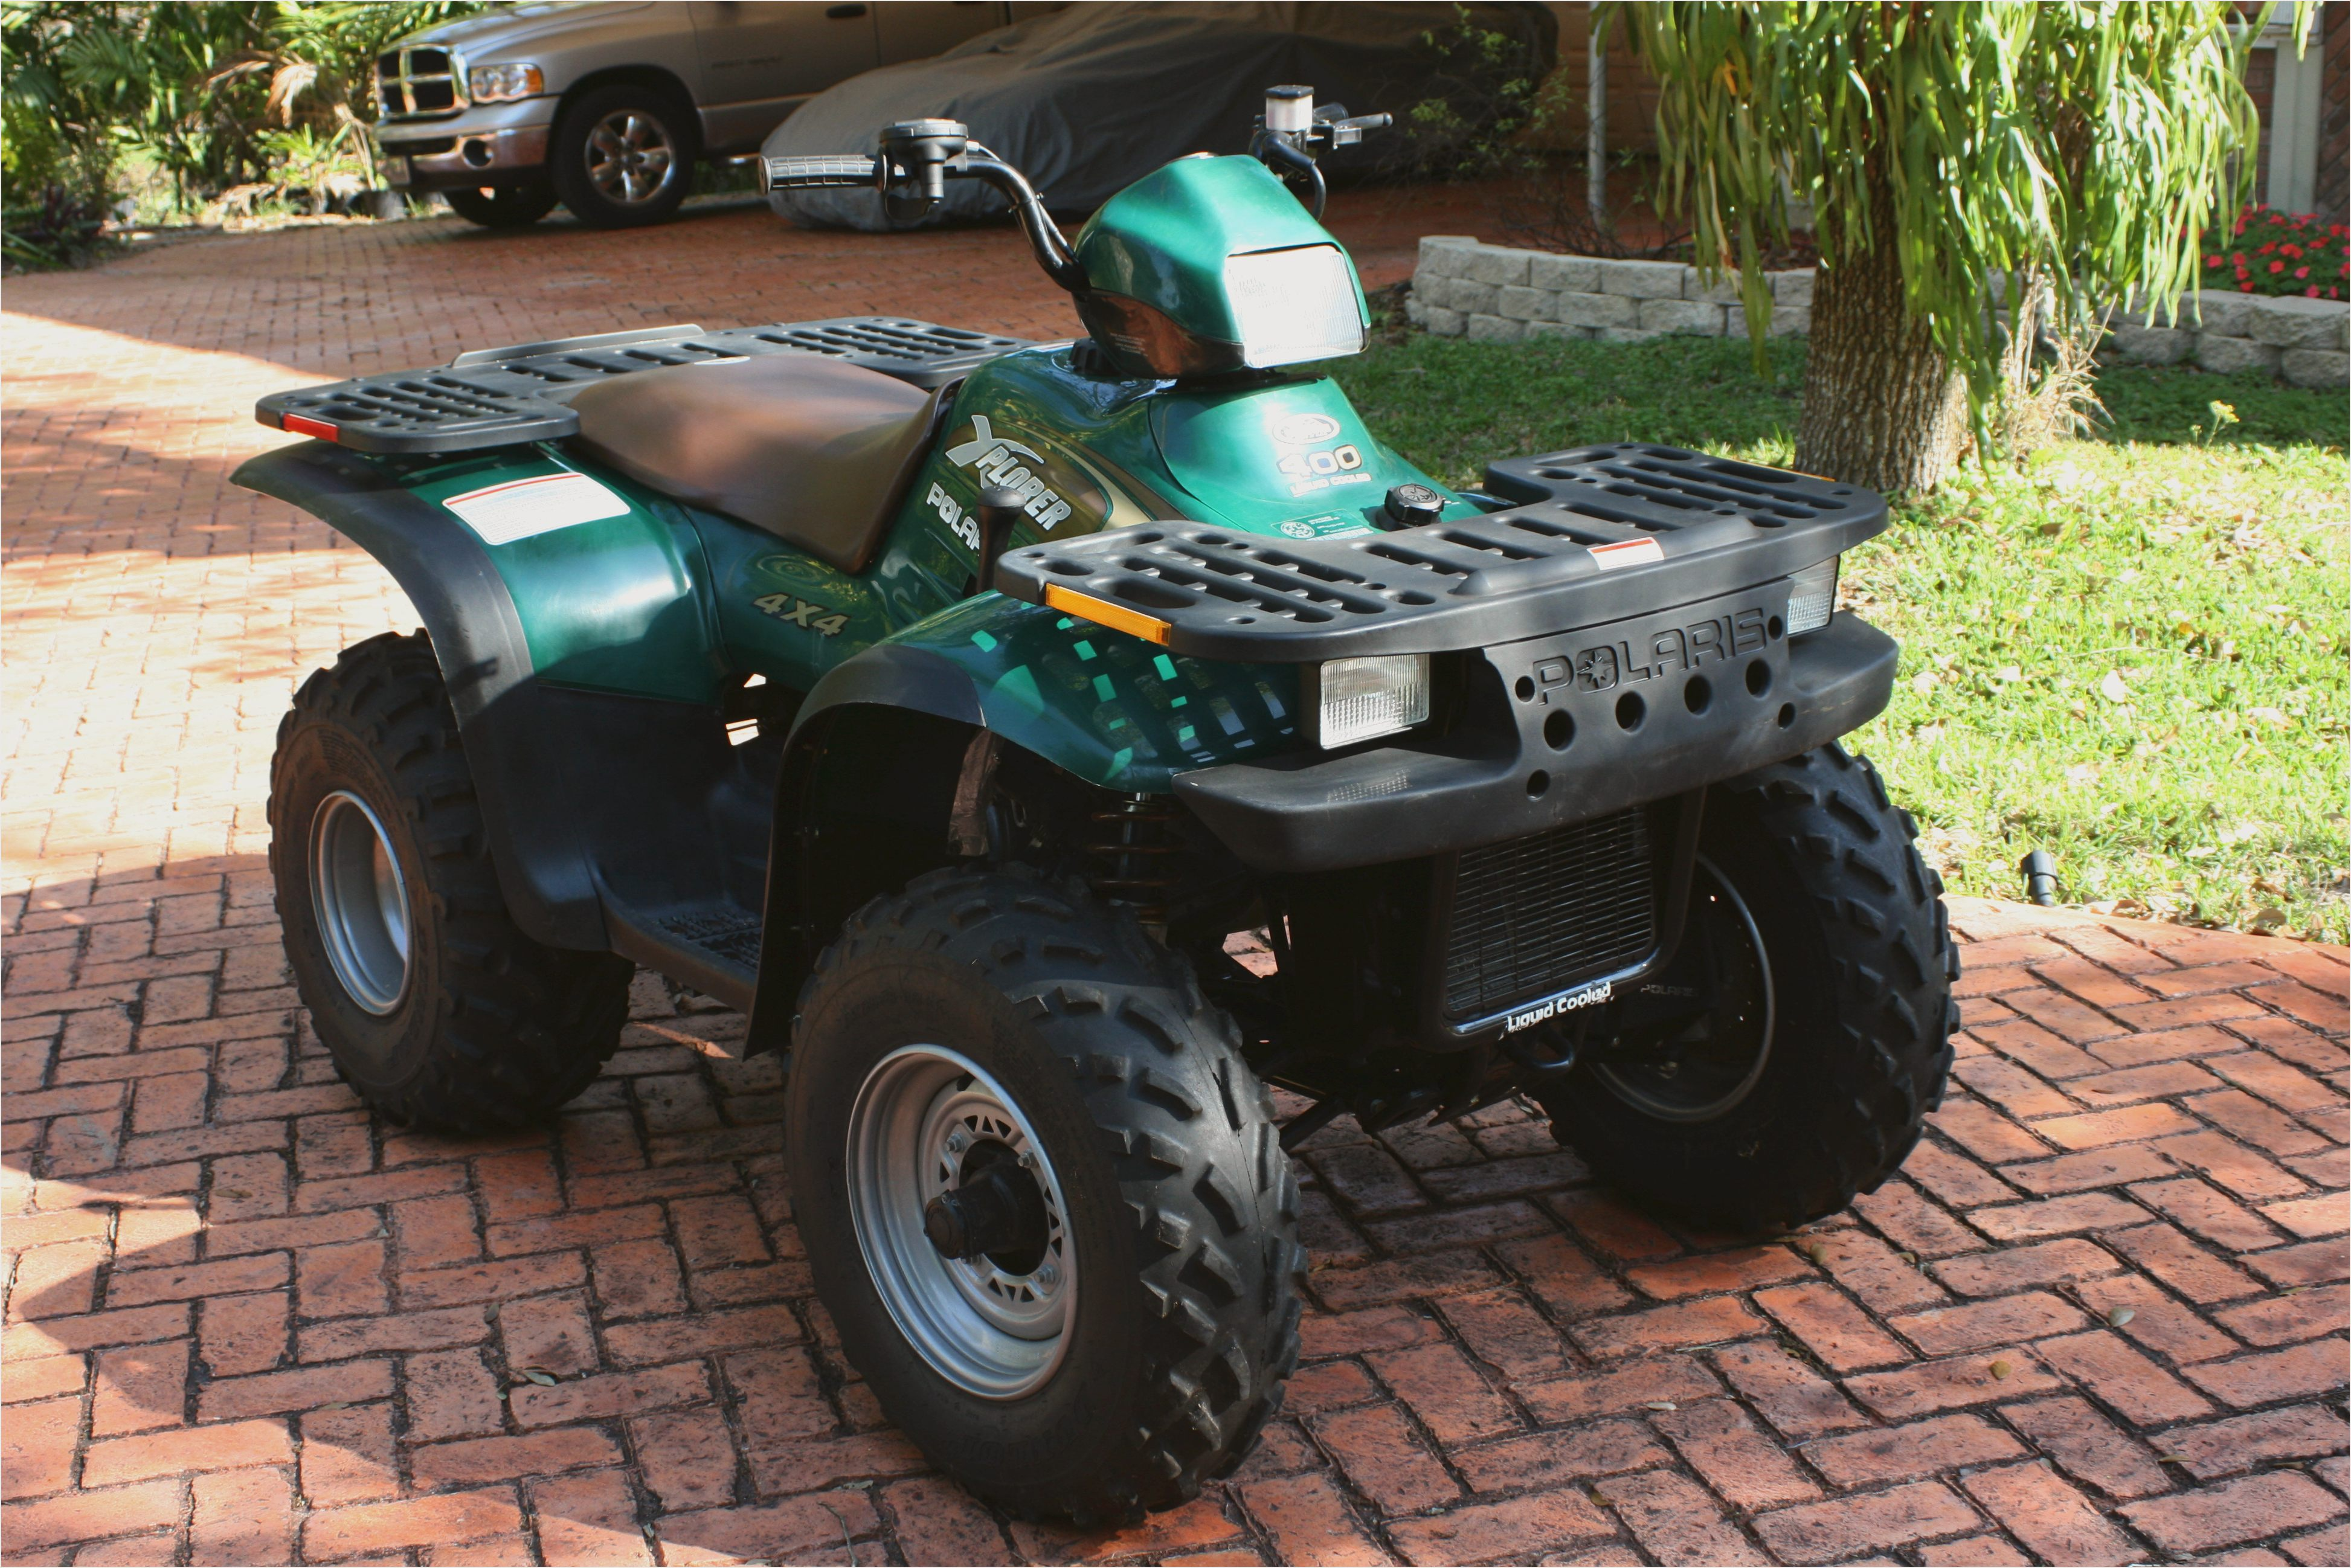 Polaris Xplorer 400 1998 images #120441